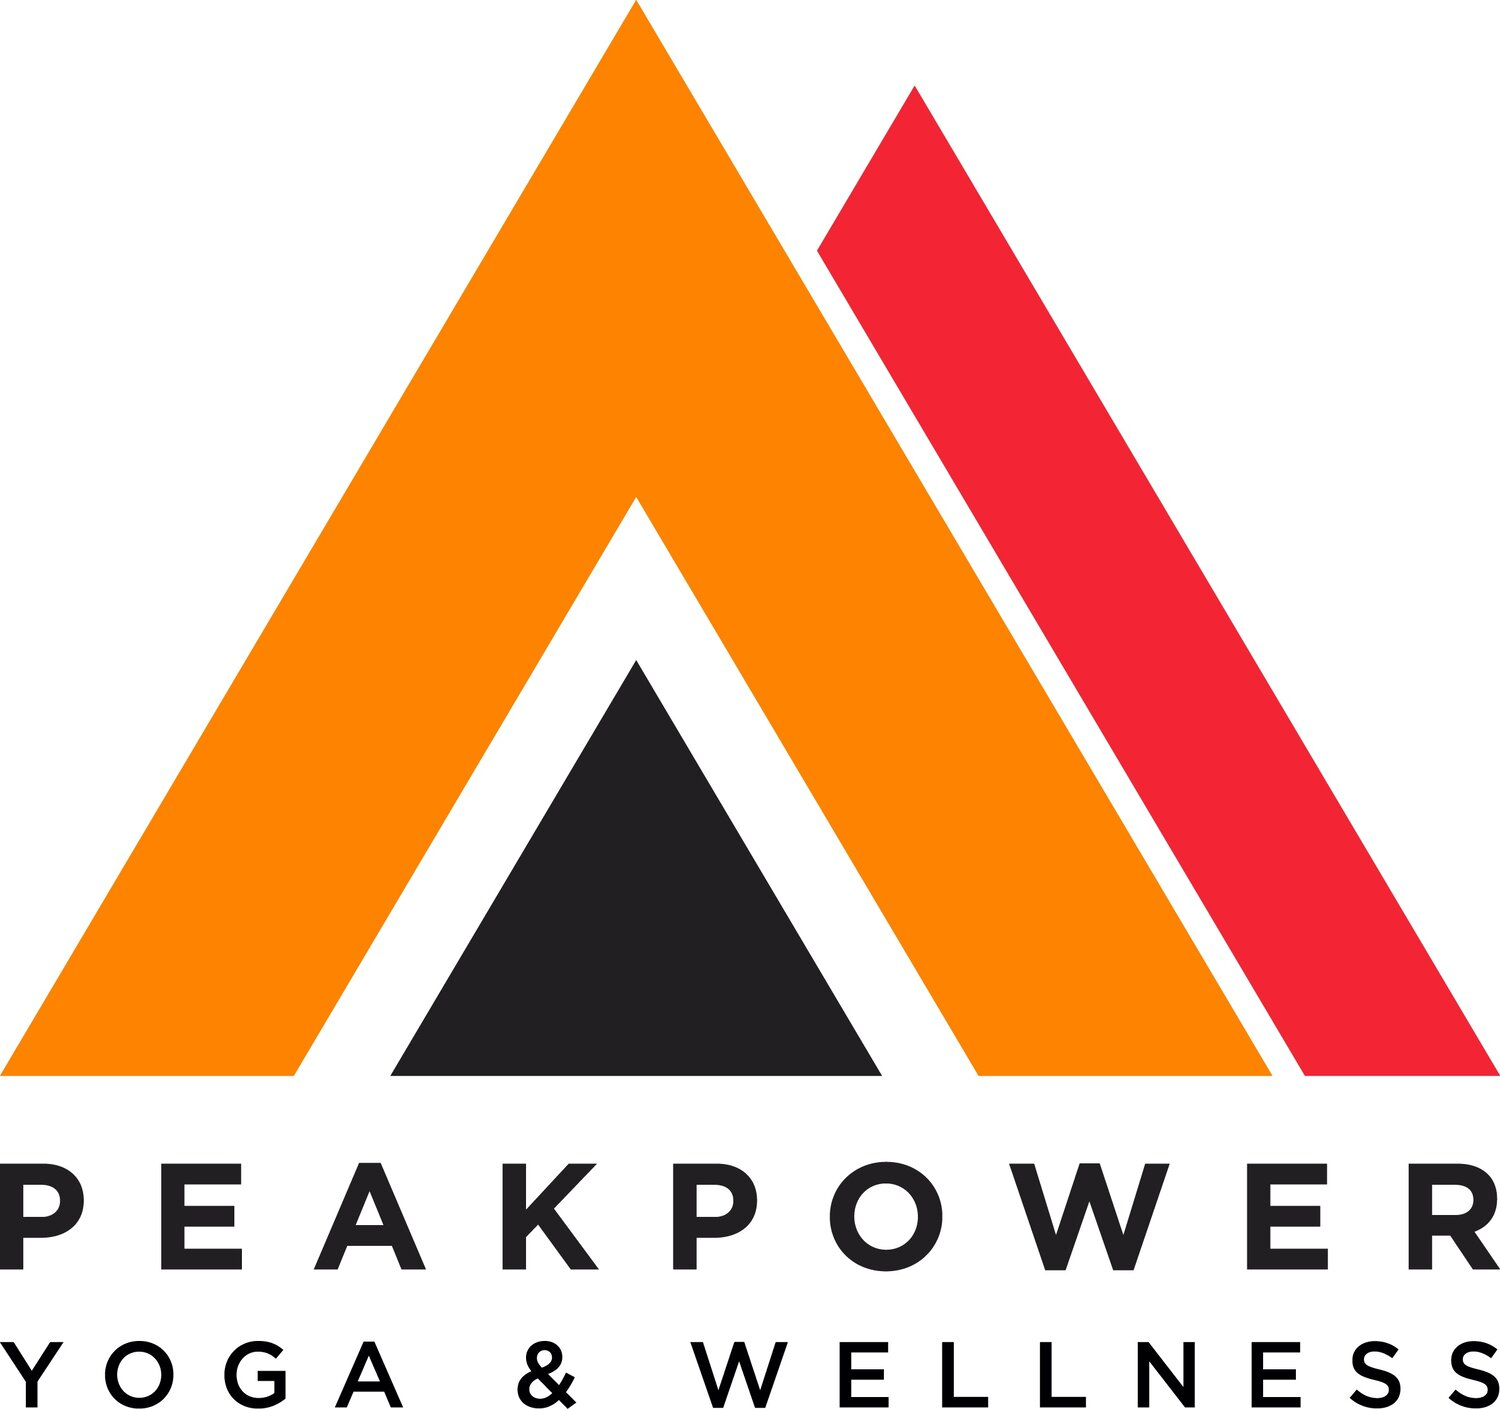 Peak Power Yoga & Wellness